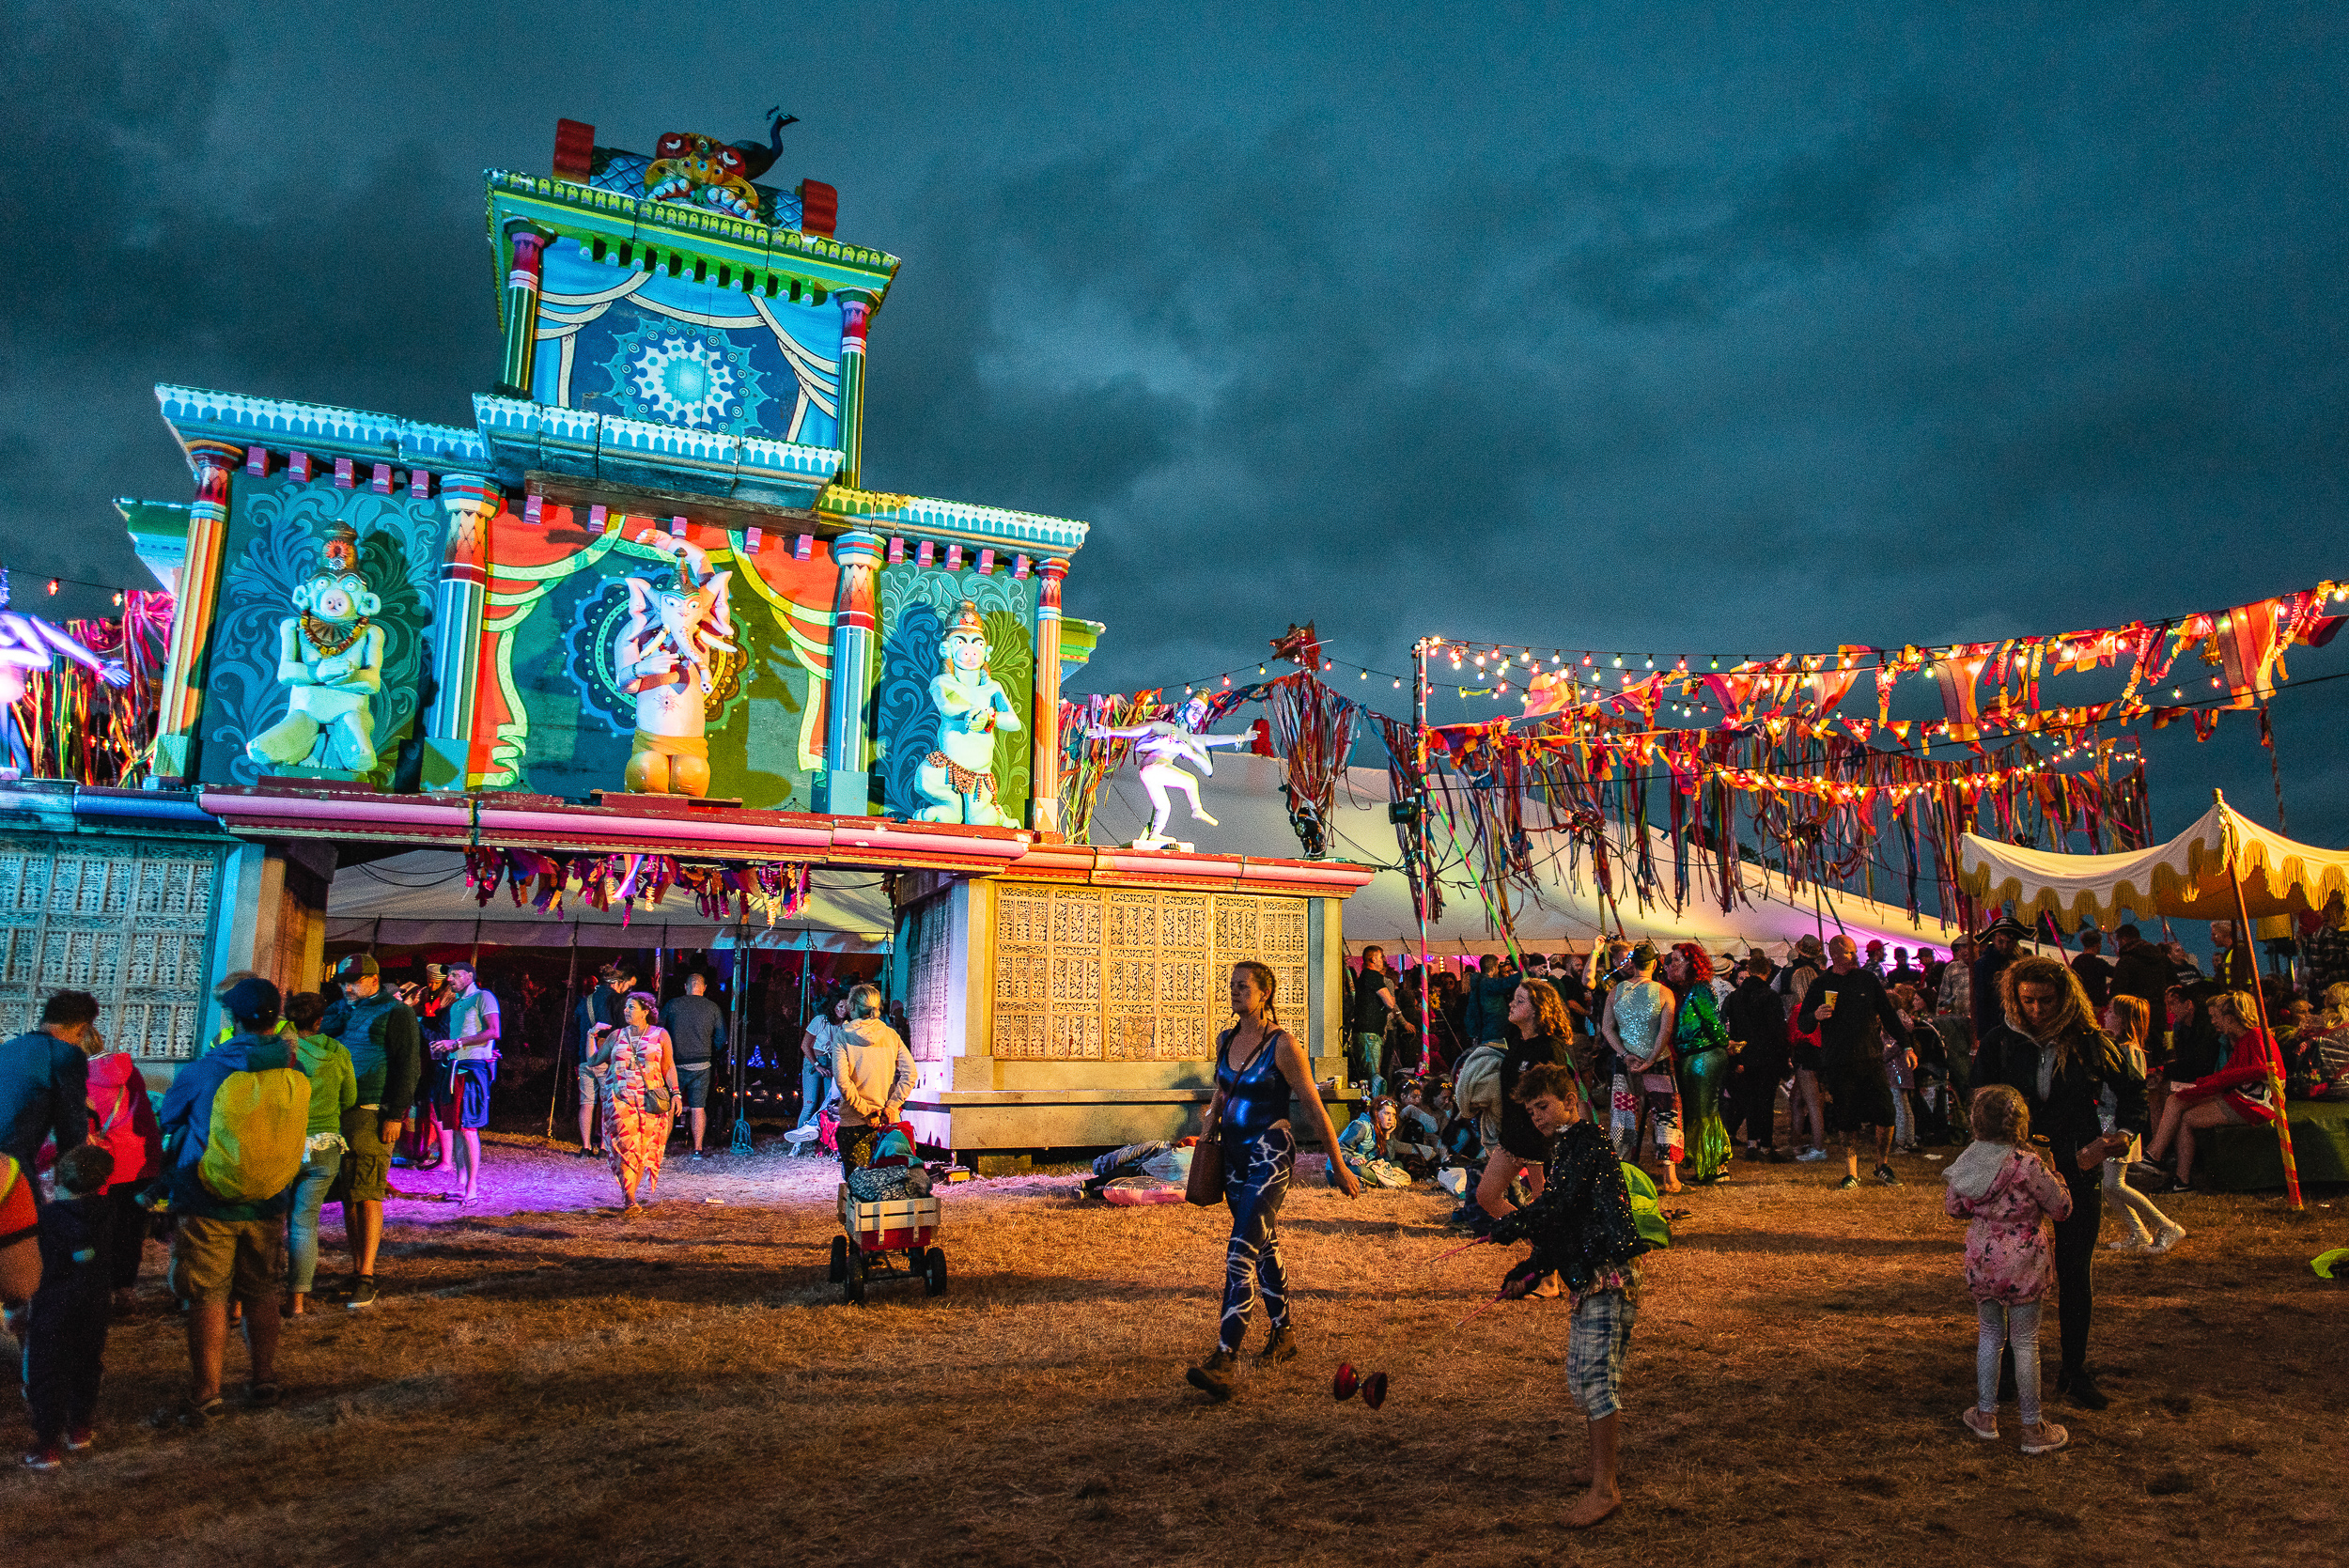 Nights at Camp Bestival